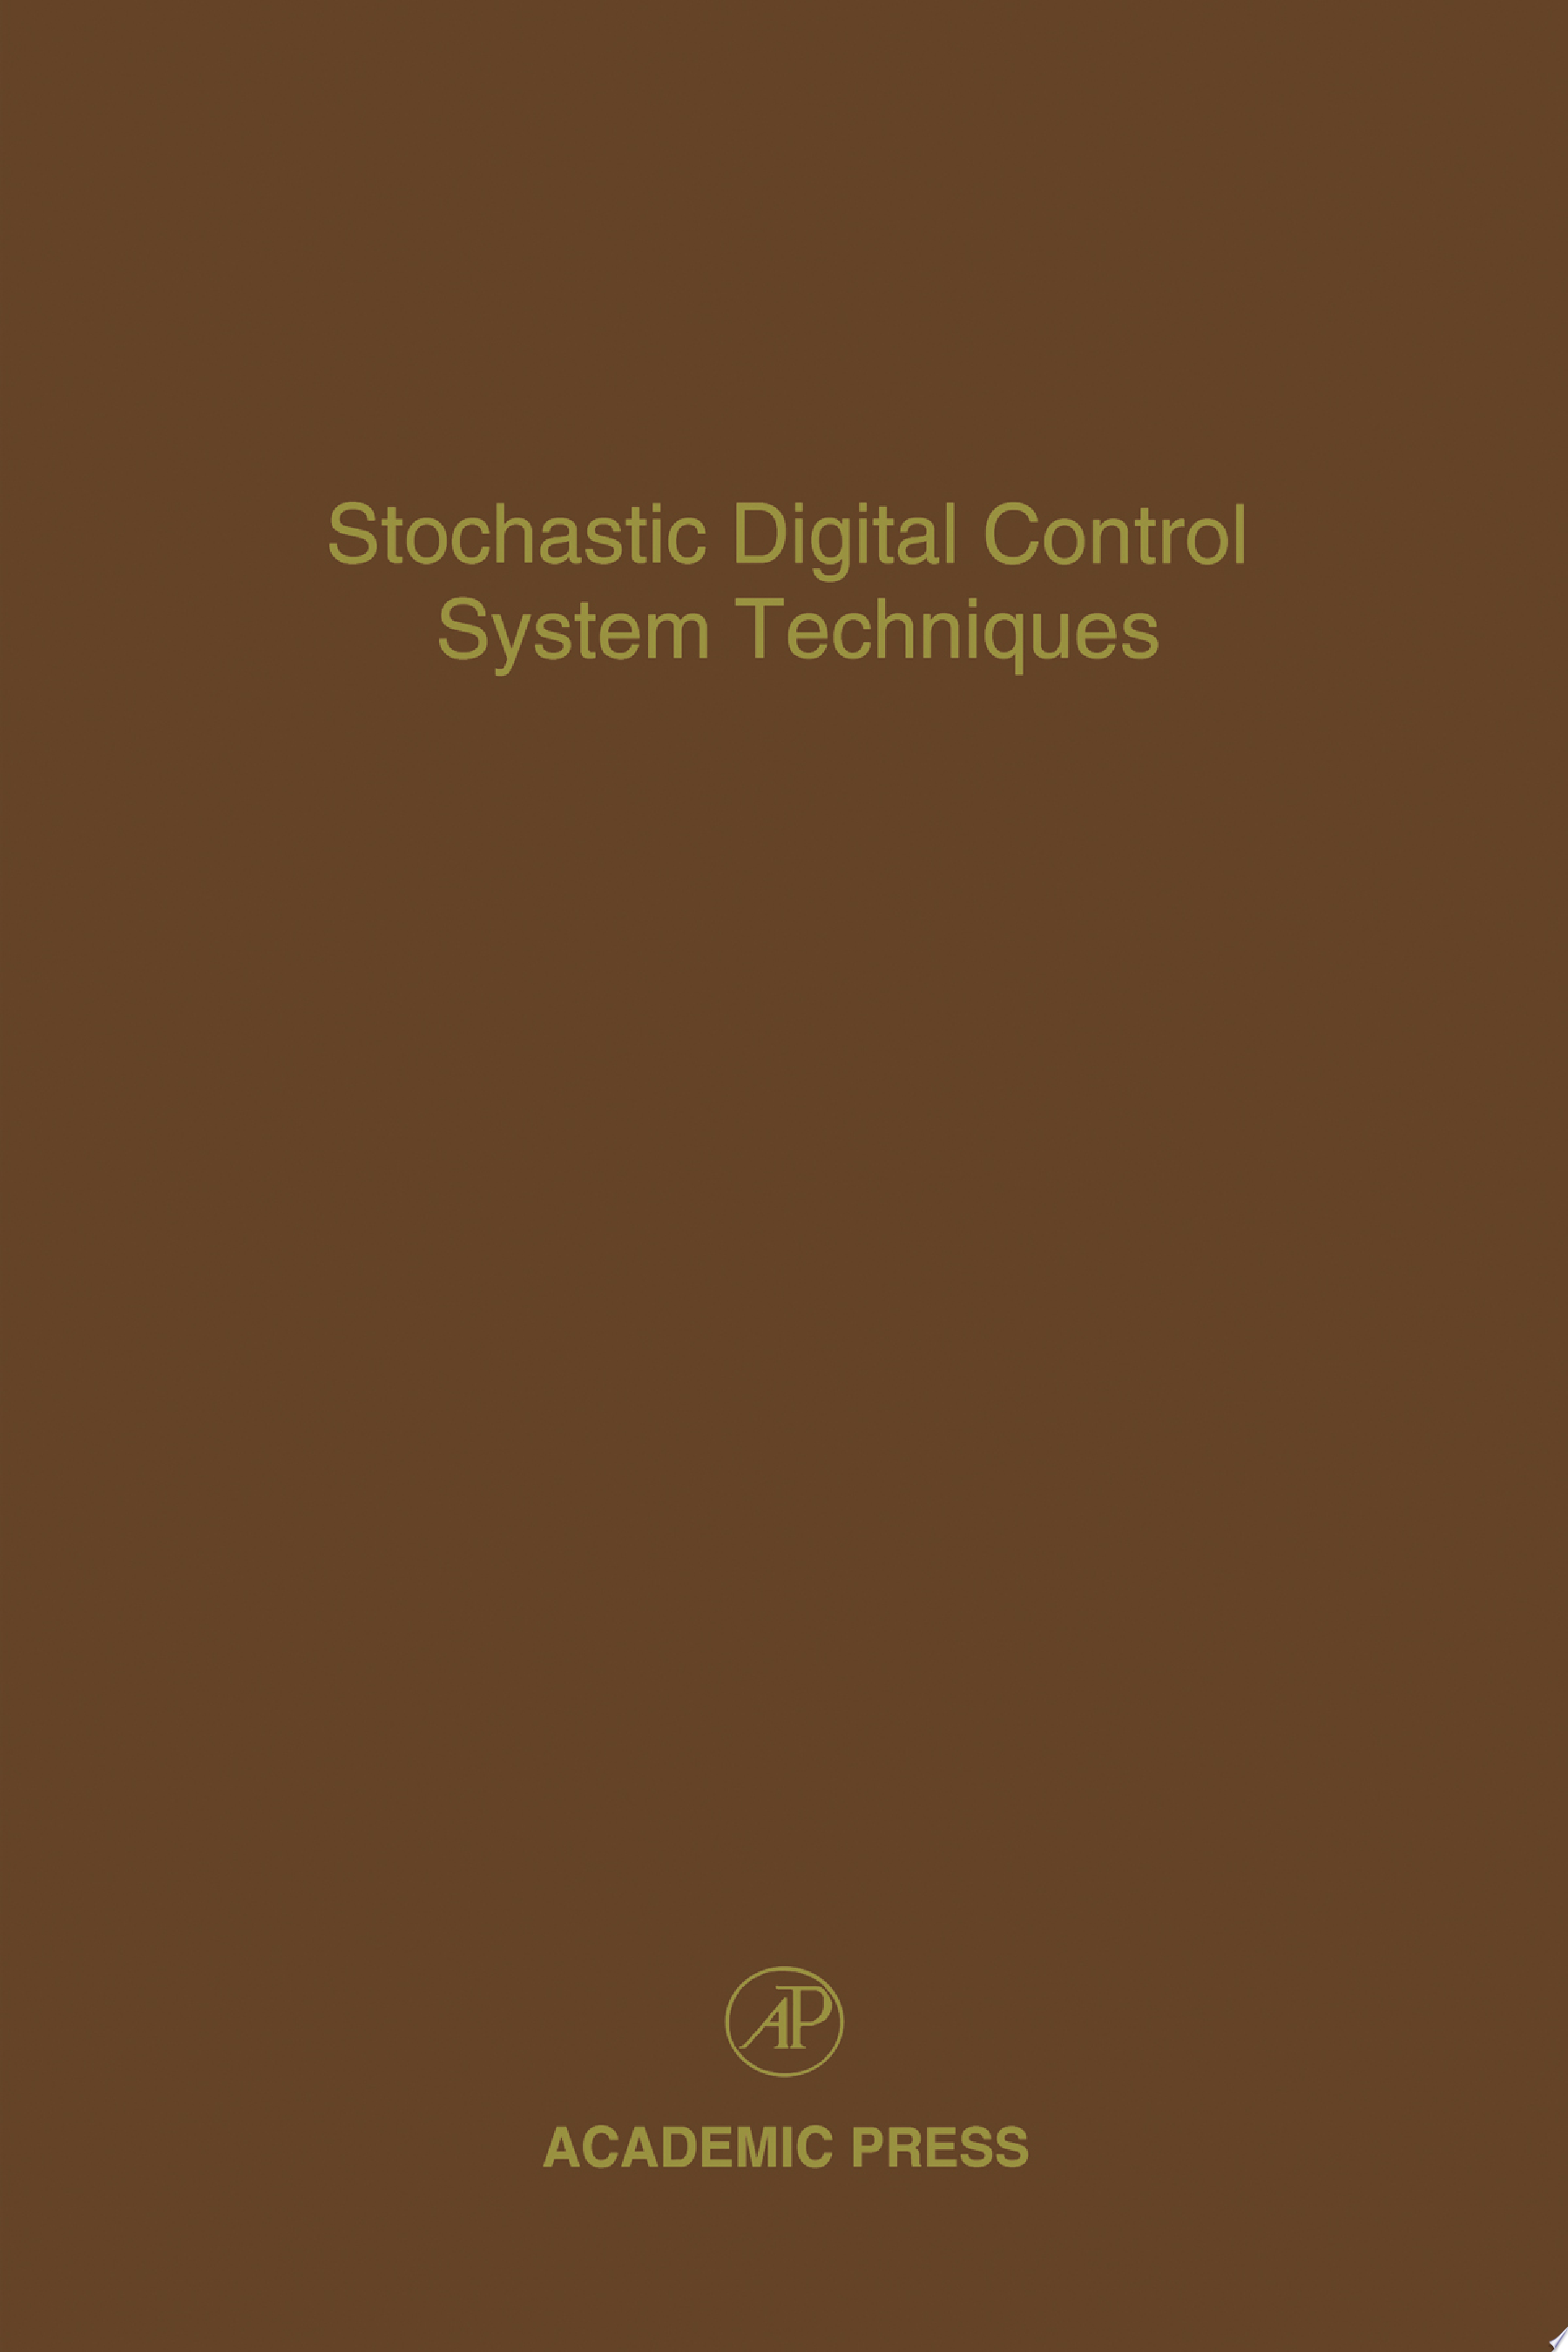 Stochastic Digital Control System Techniques